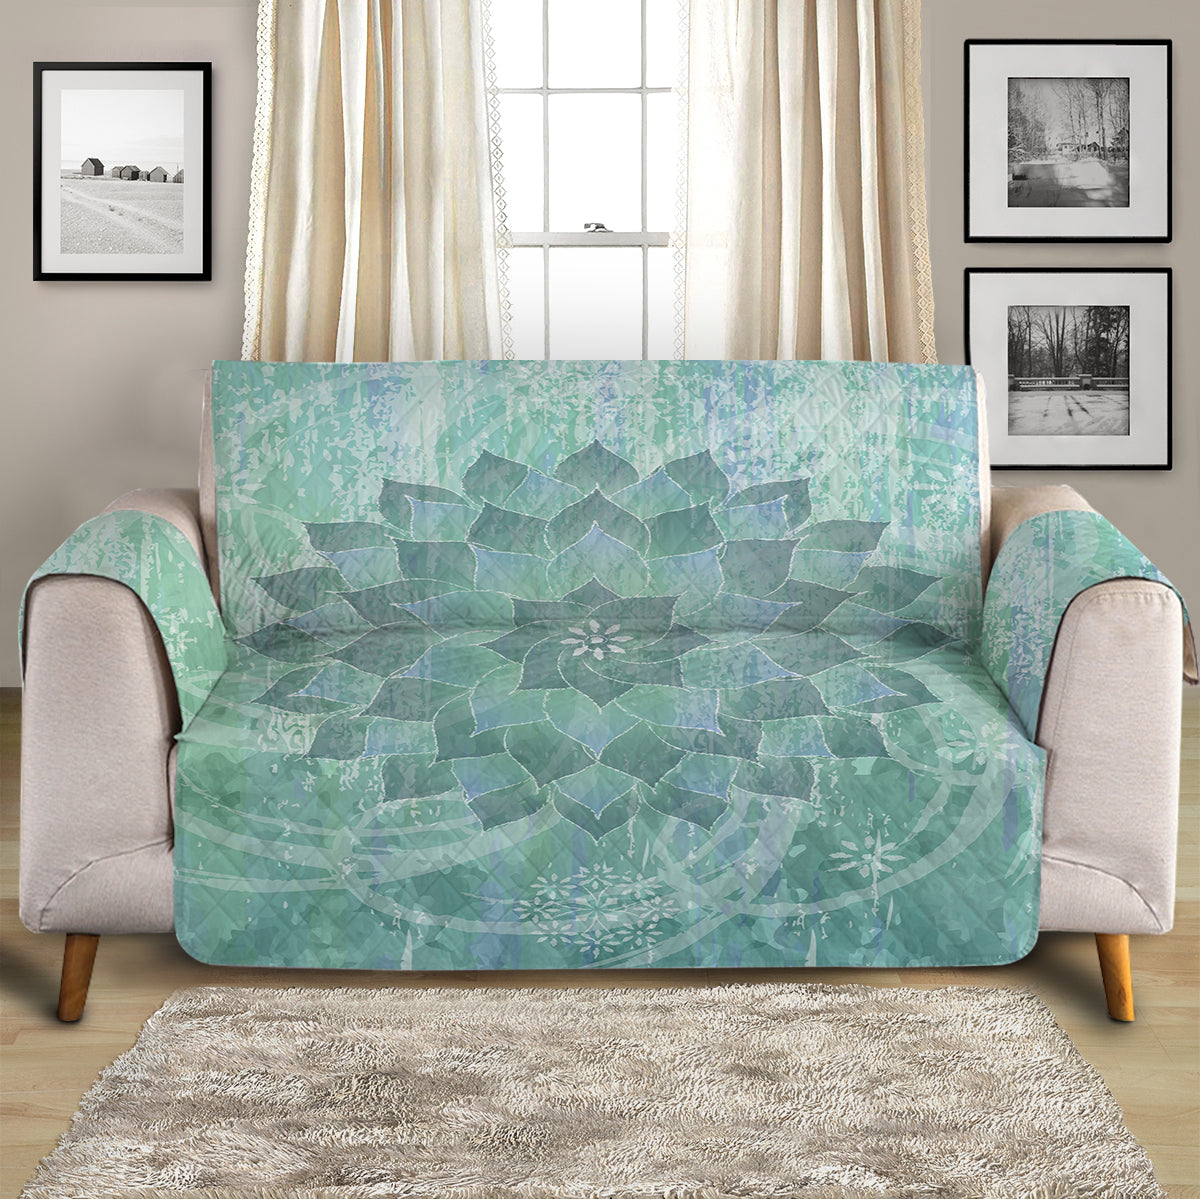 The Ocean Hues Sofa Cover